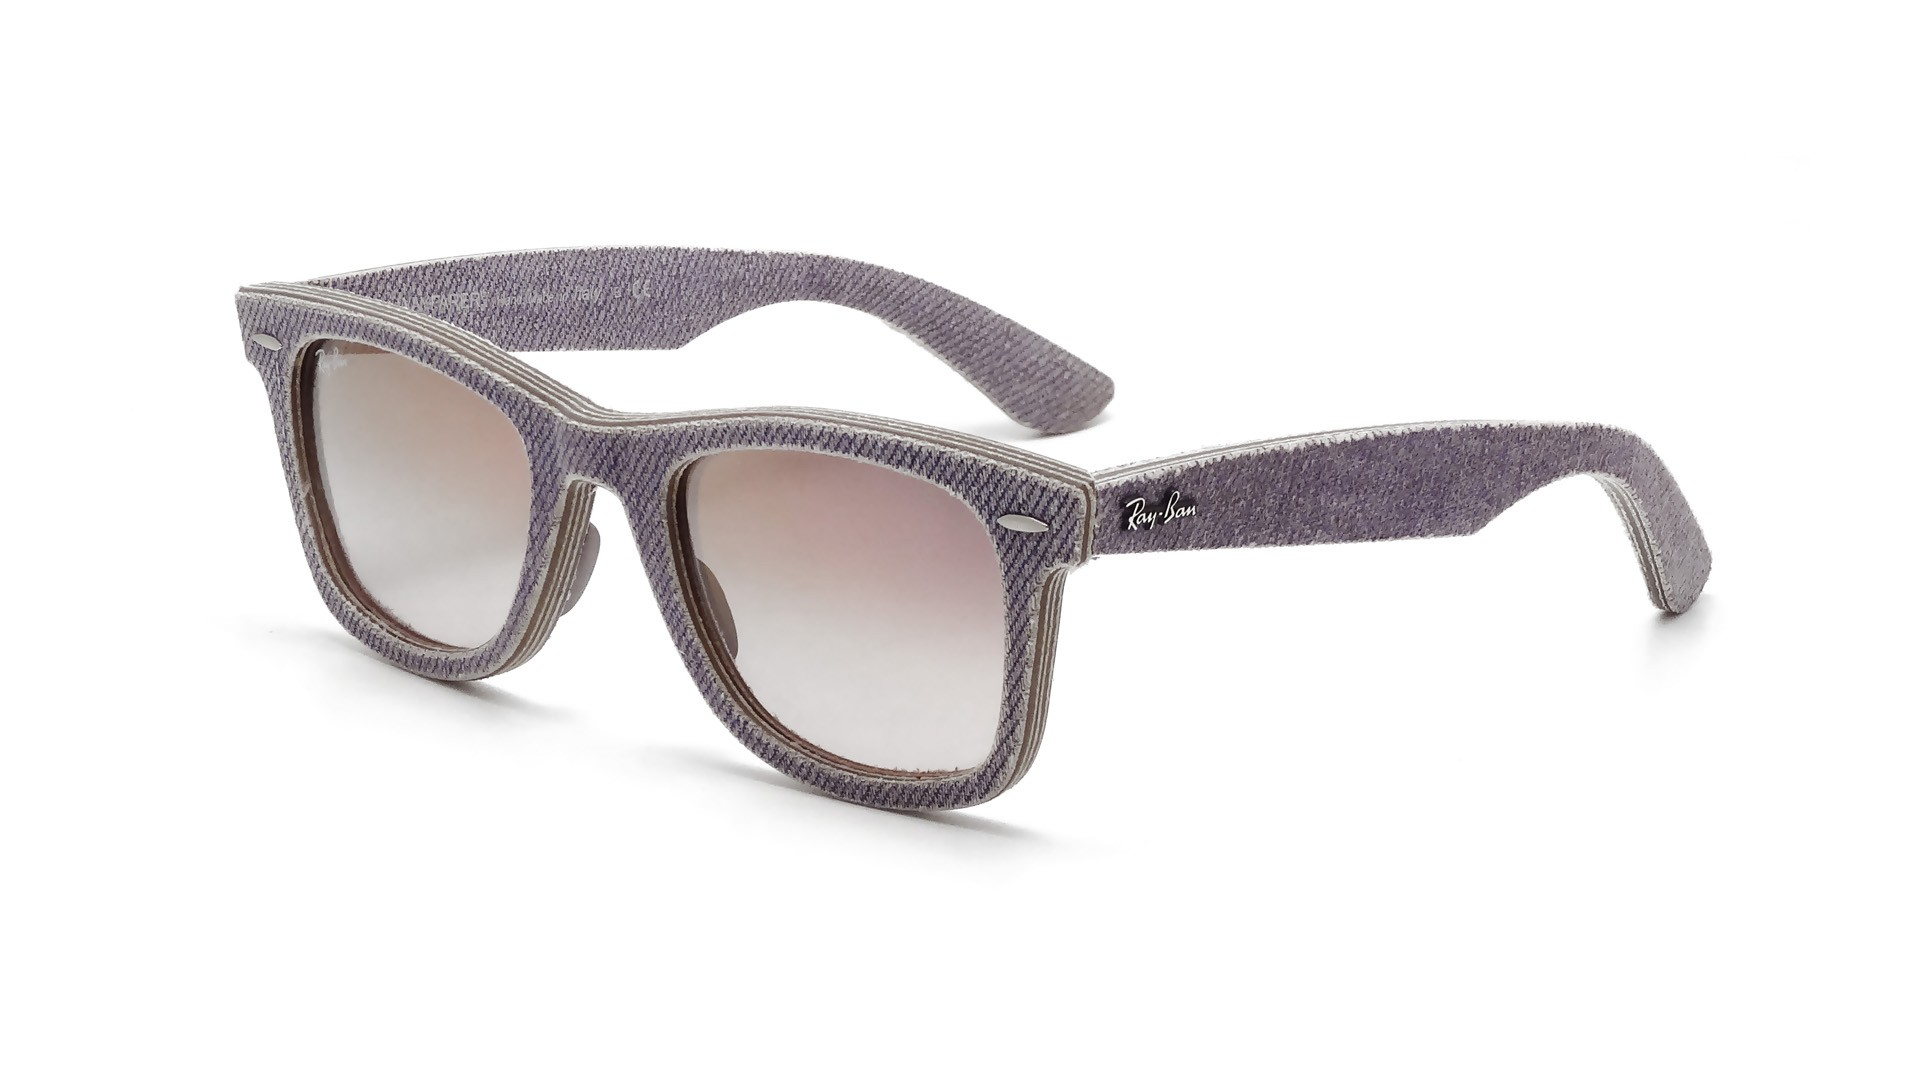 1fd4d3dcdf Sunglasses Ray-Ban Original Wayfarer Denim Purple RB2140 1167 S5 50-18  Medium Gradient